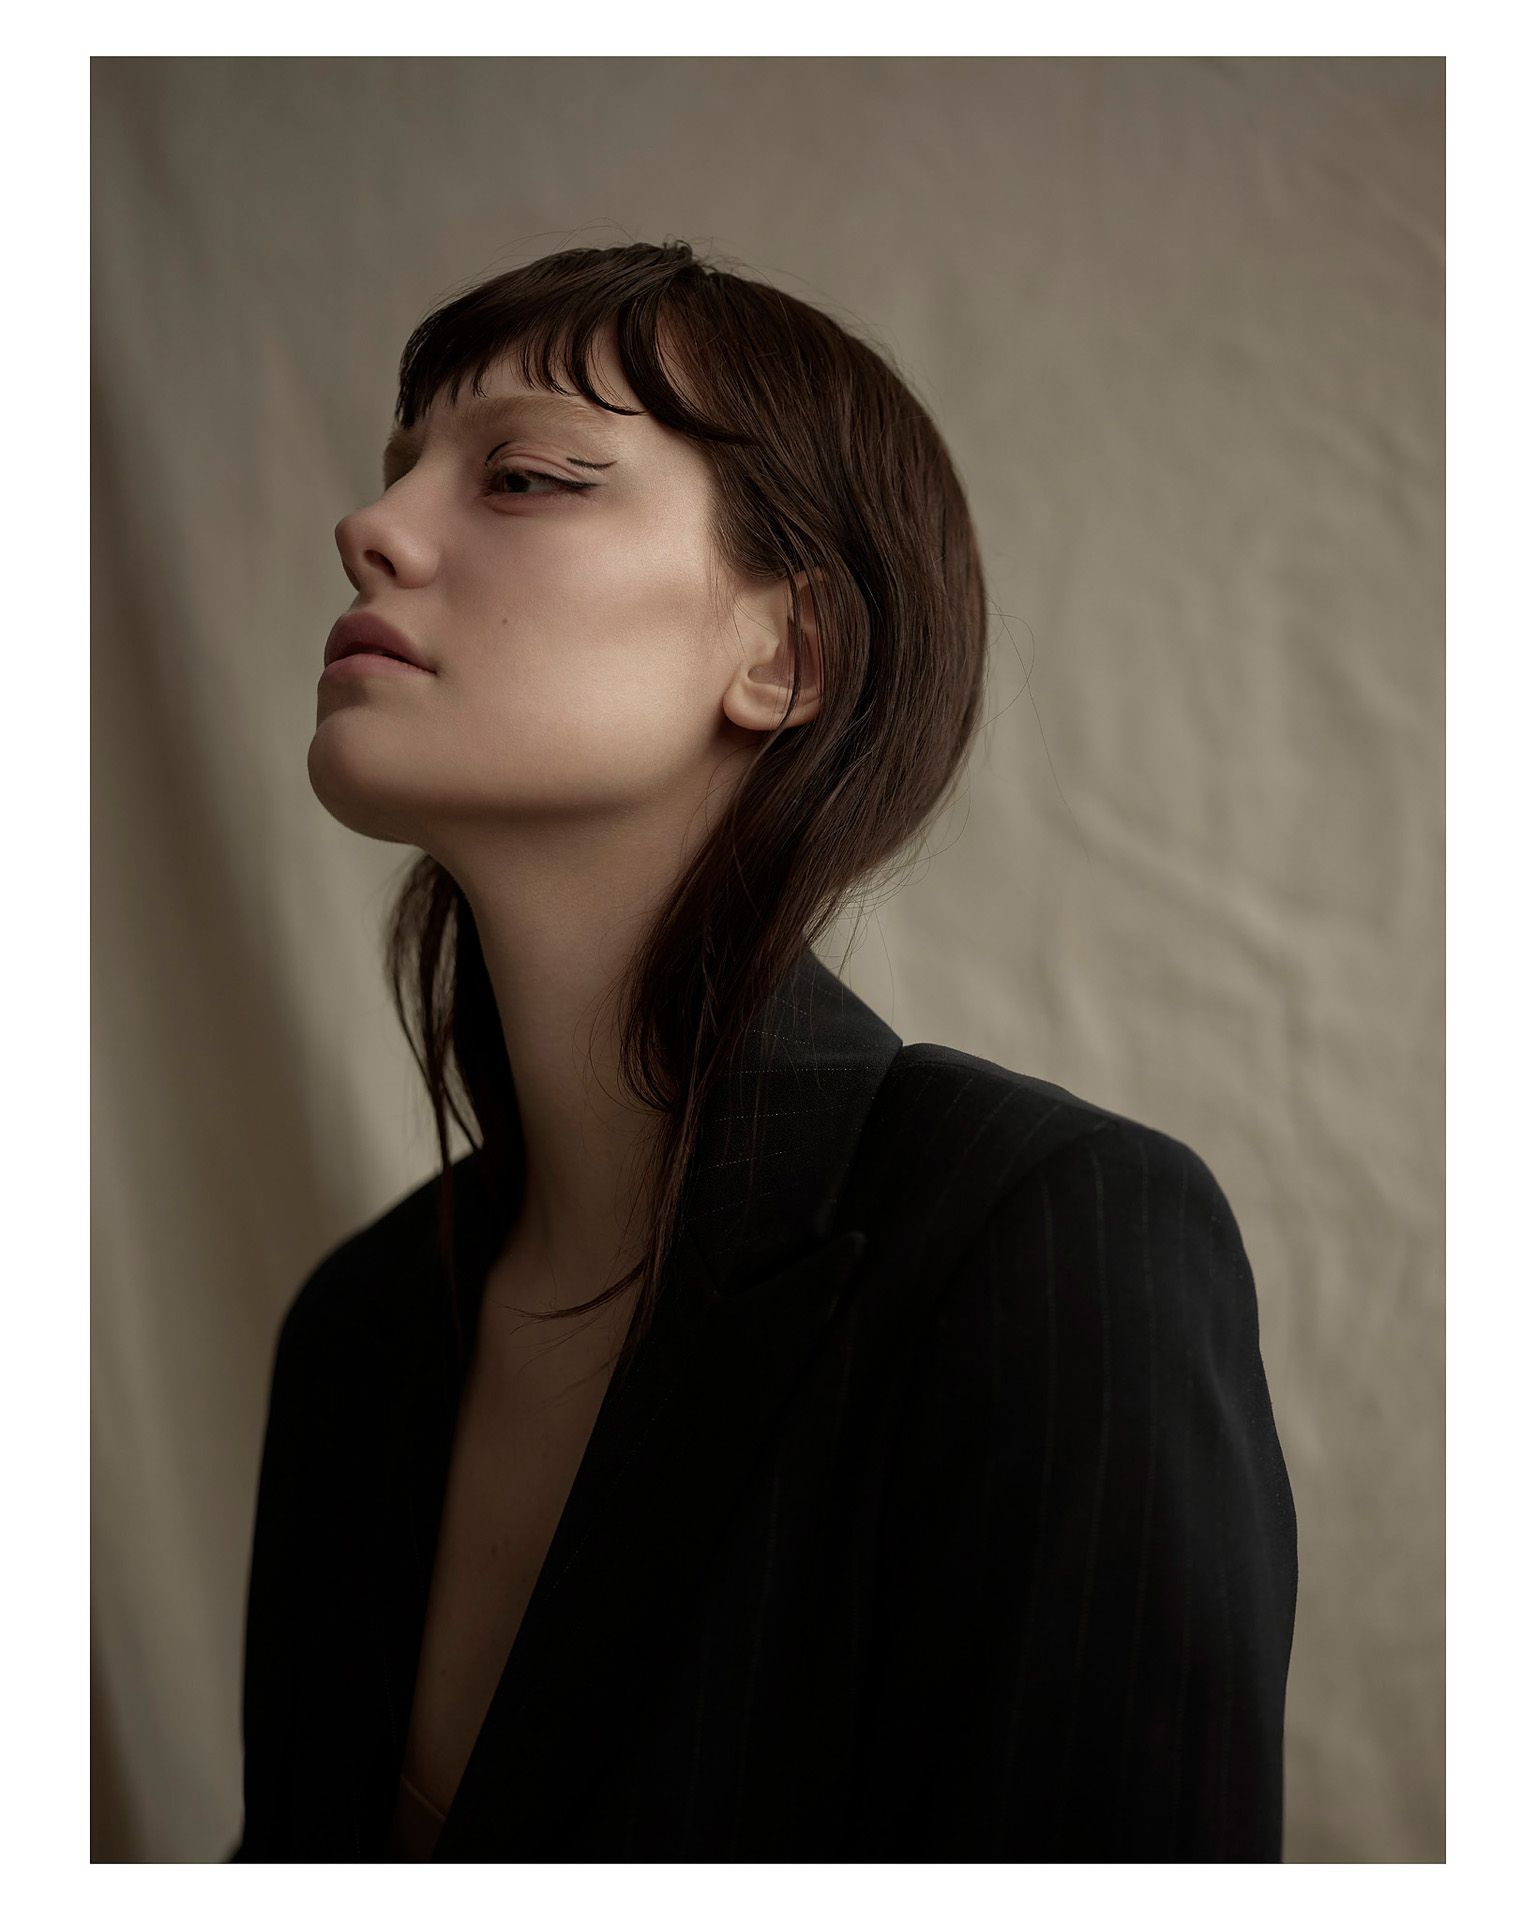 woman model wearing black and light stripped suit jacket looking away head high on blurred beige fabric background by Maxyme G Delisle for Mariane